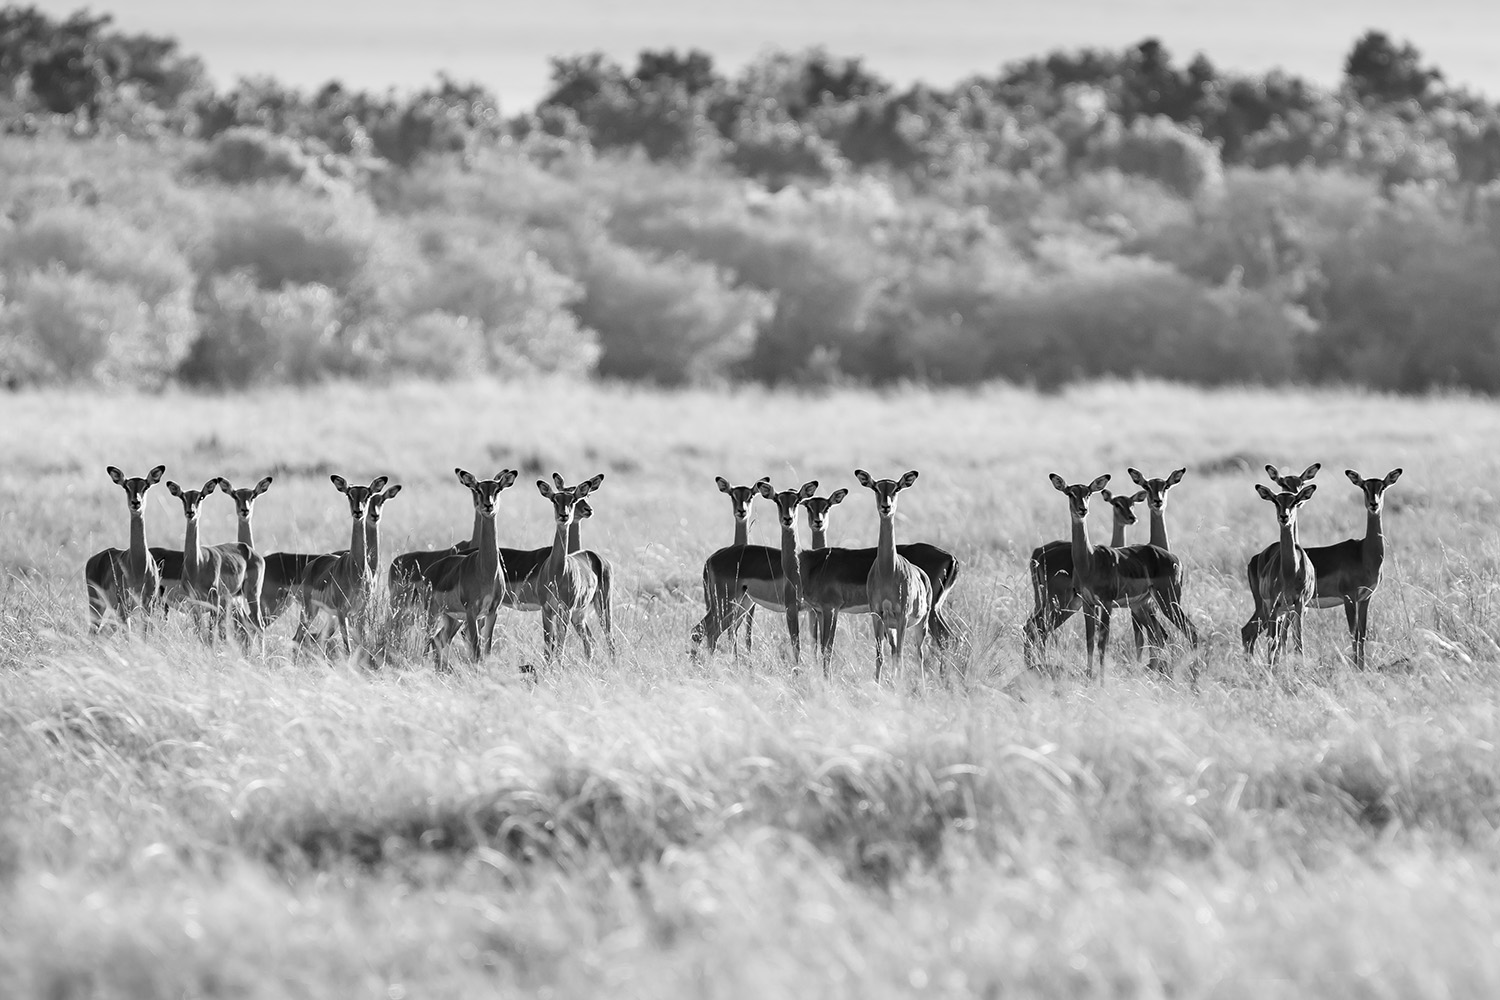 Impala to attention